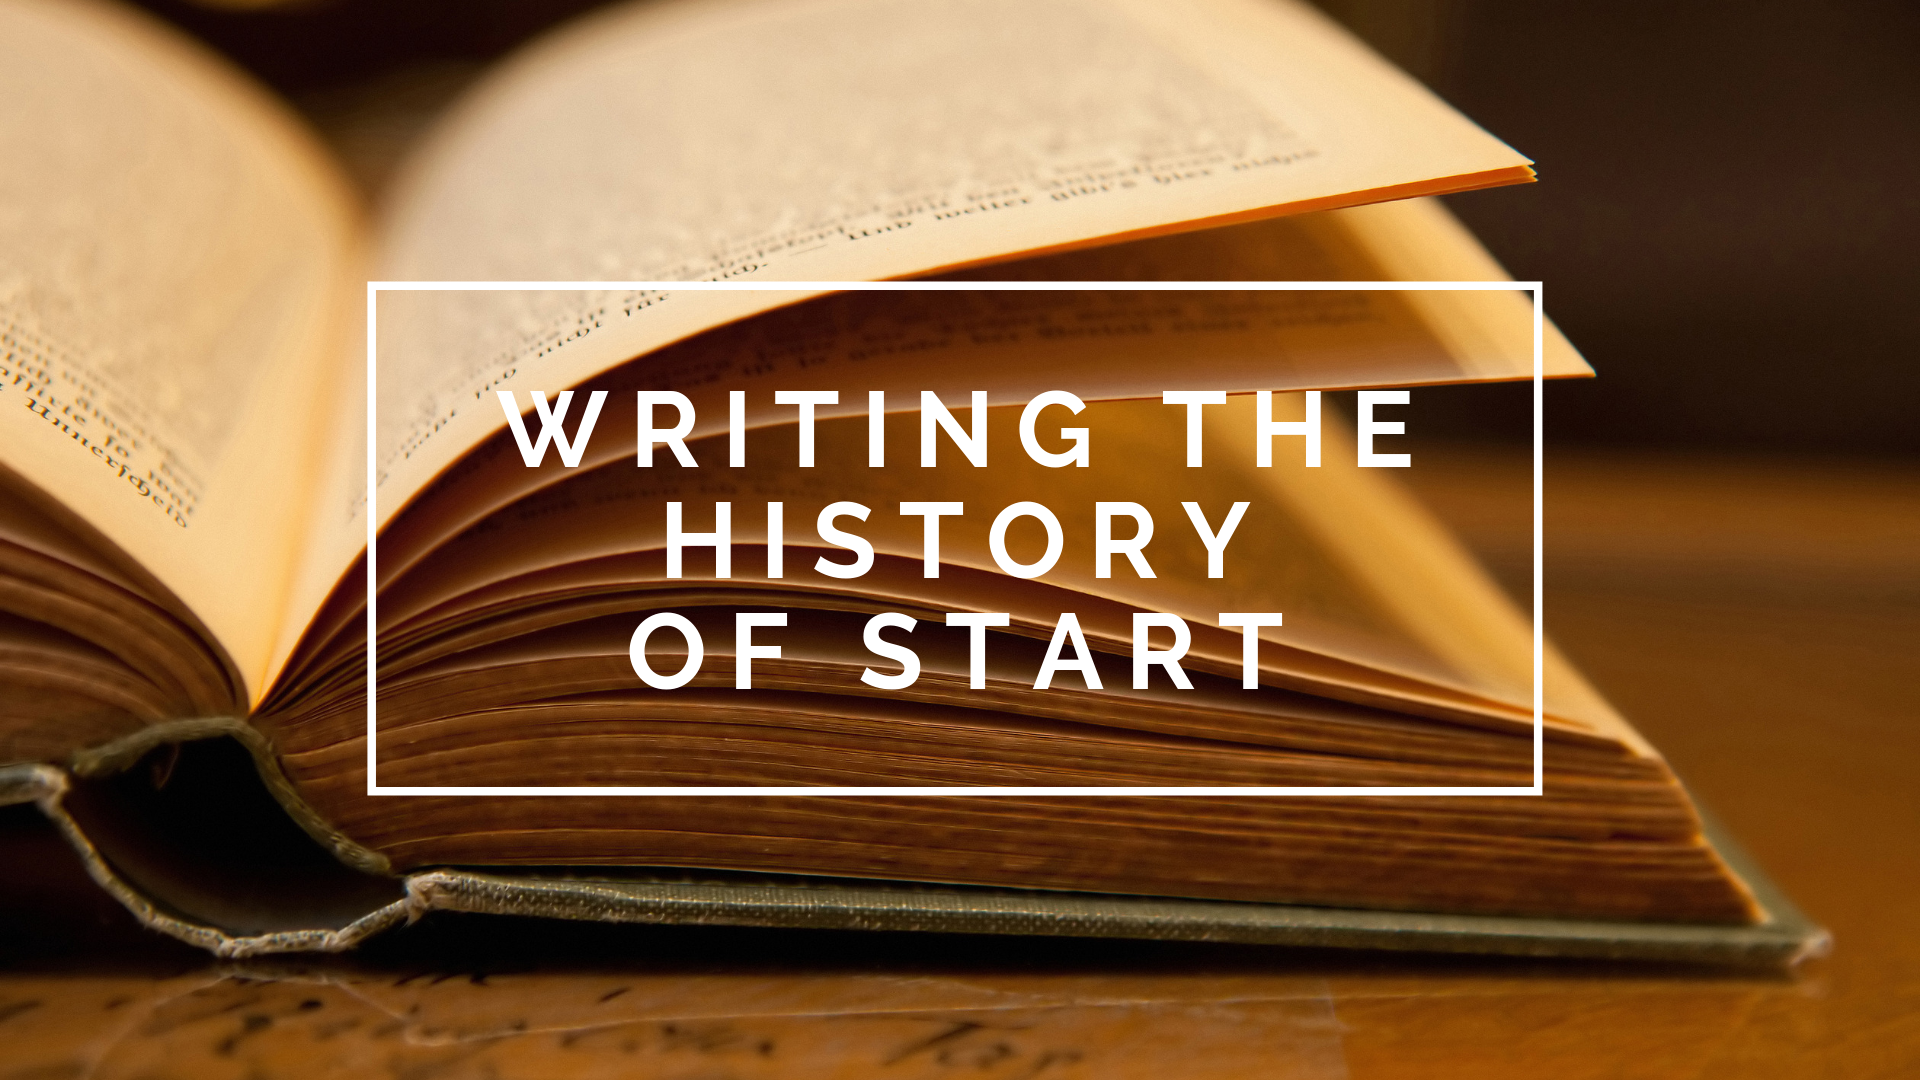 University and START combine to create an oral history of START